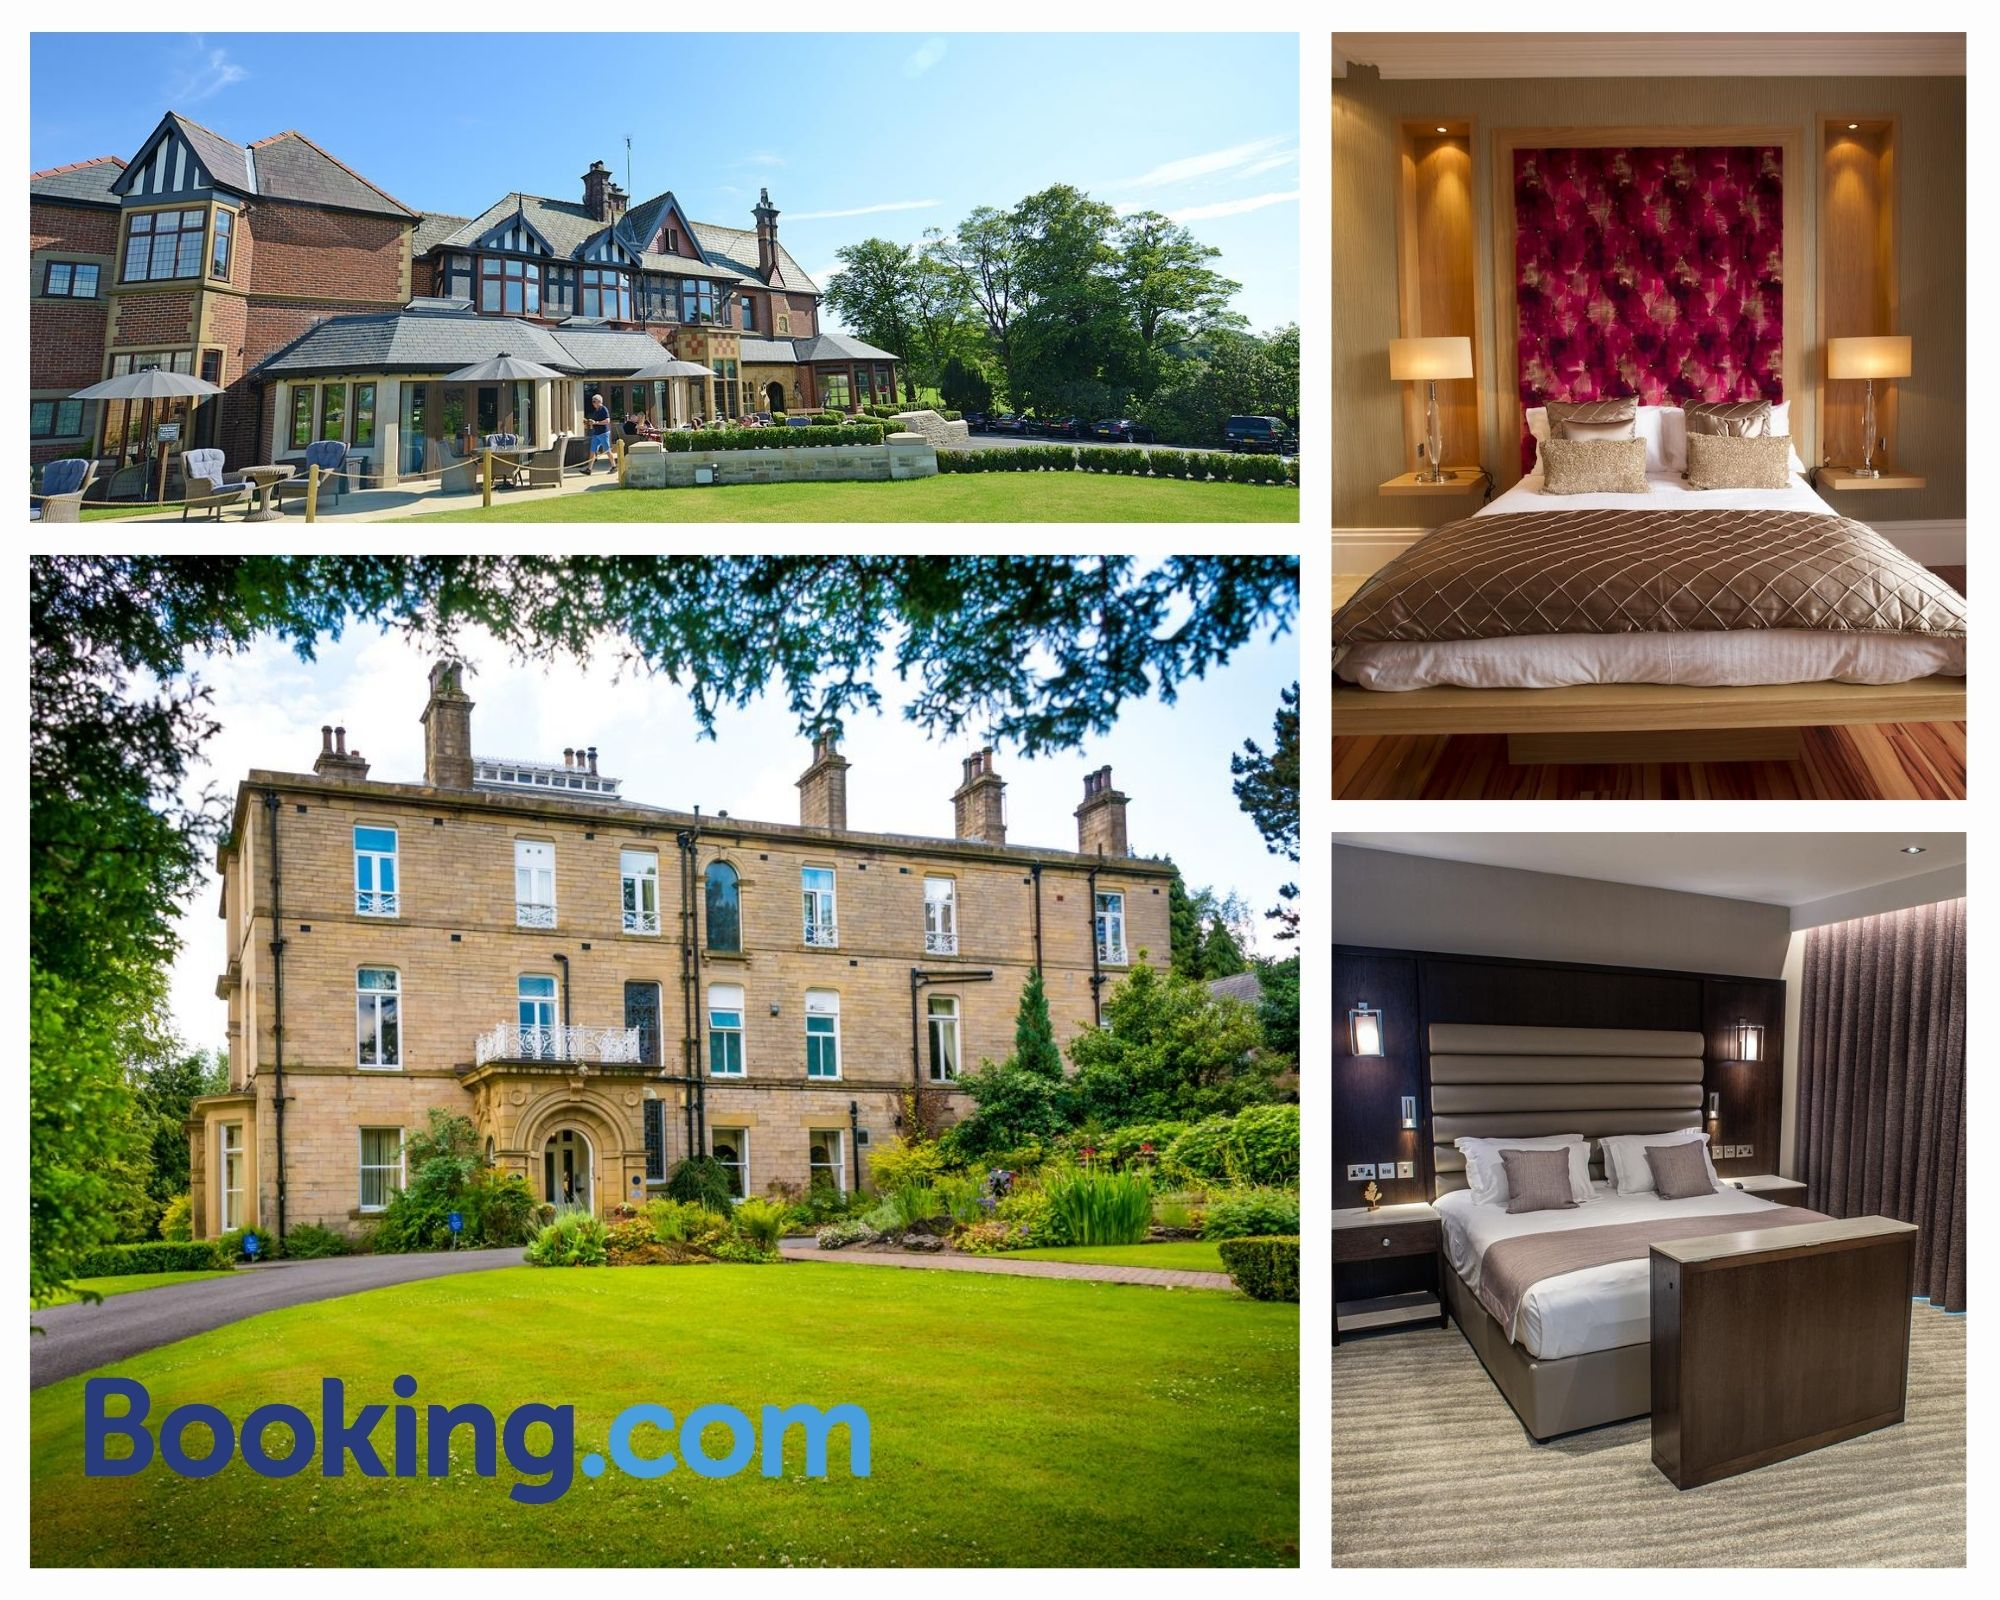 Pictures: Luxury hotels and apartments you can stay at in East Lancashire